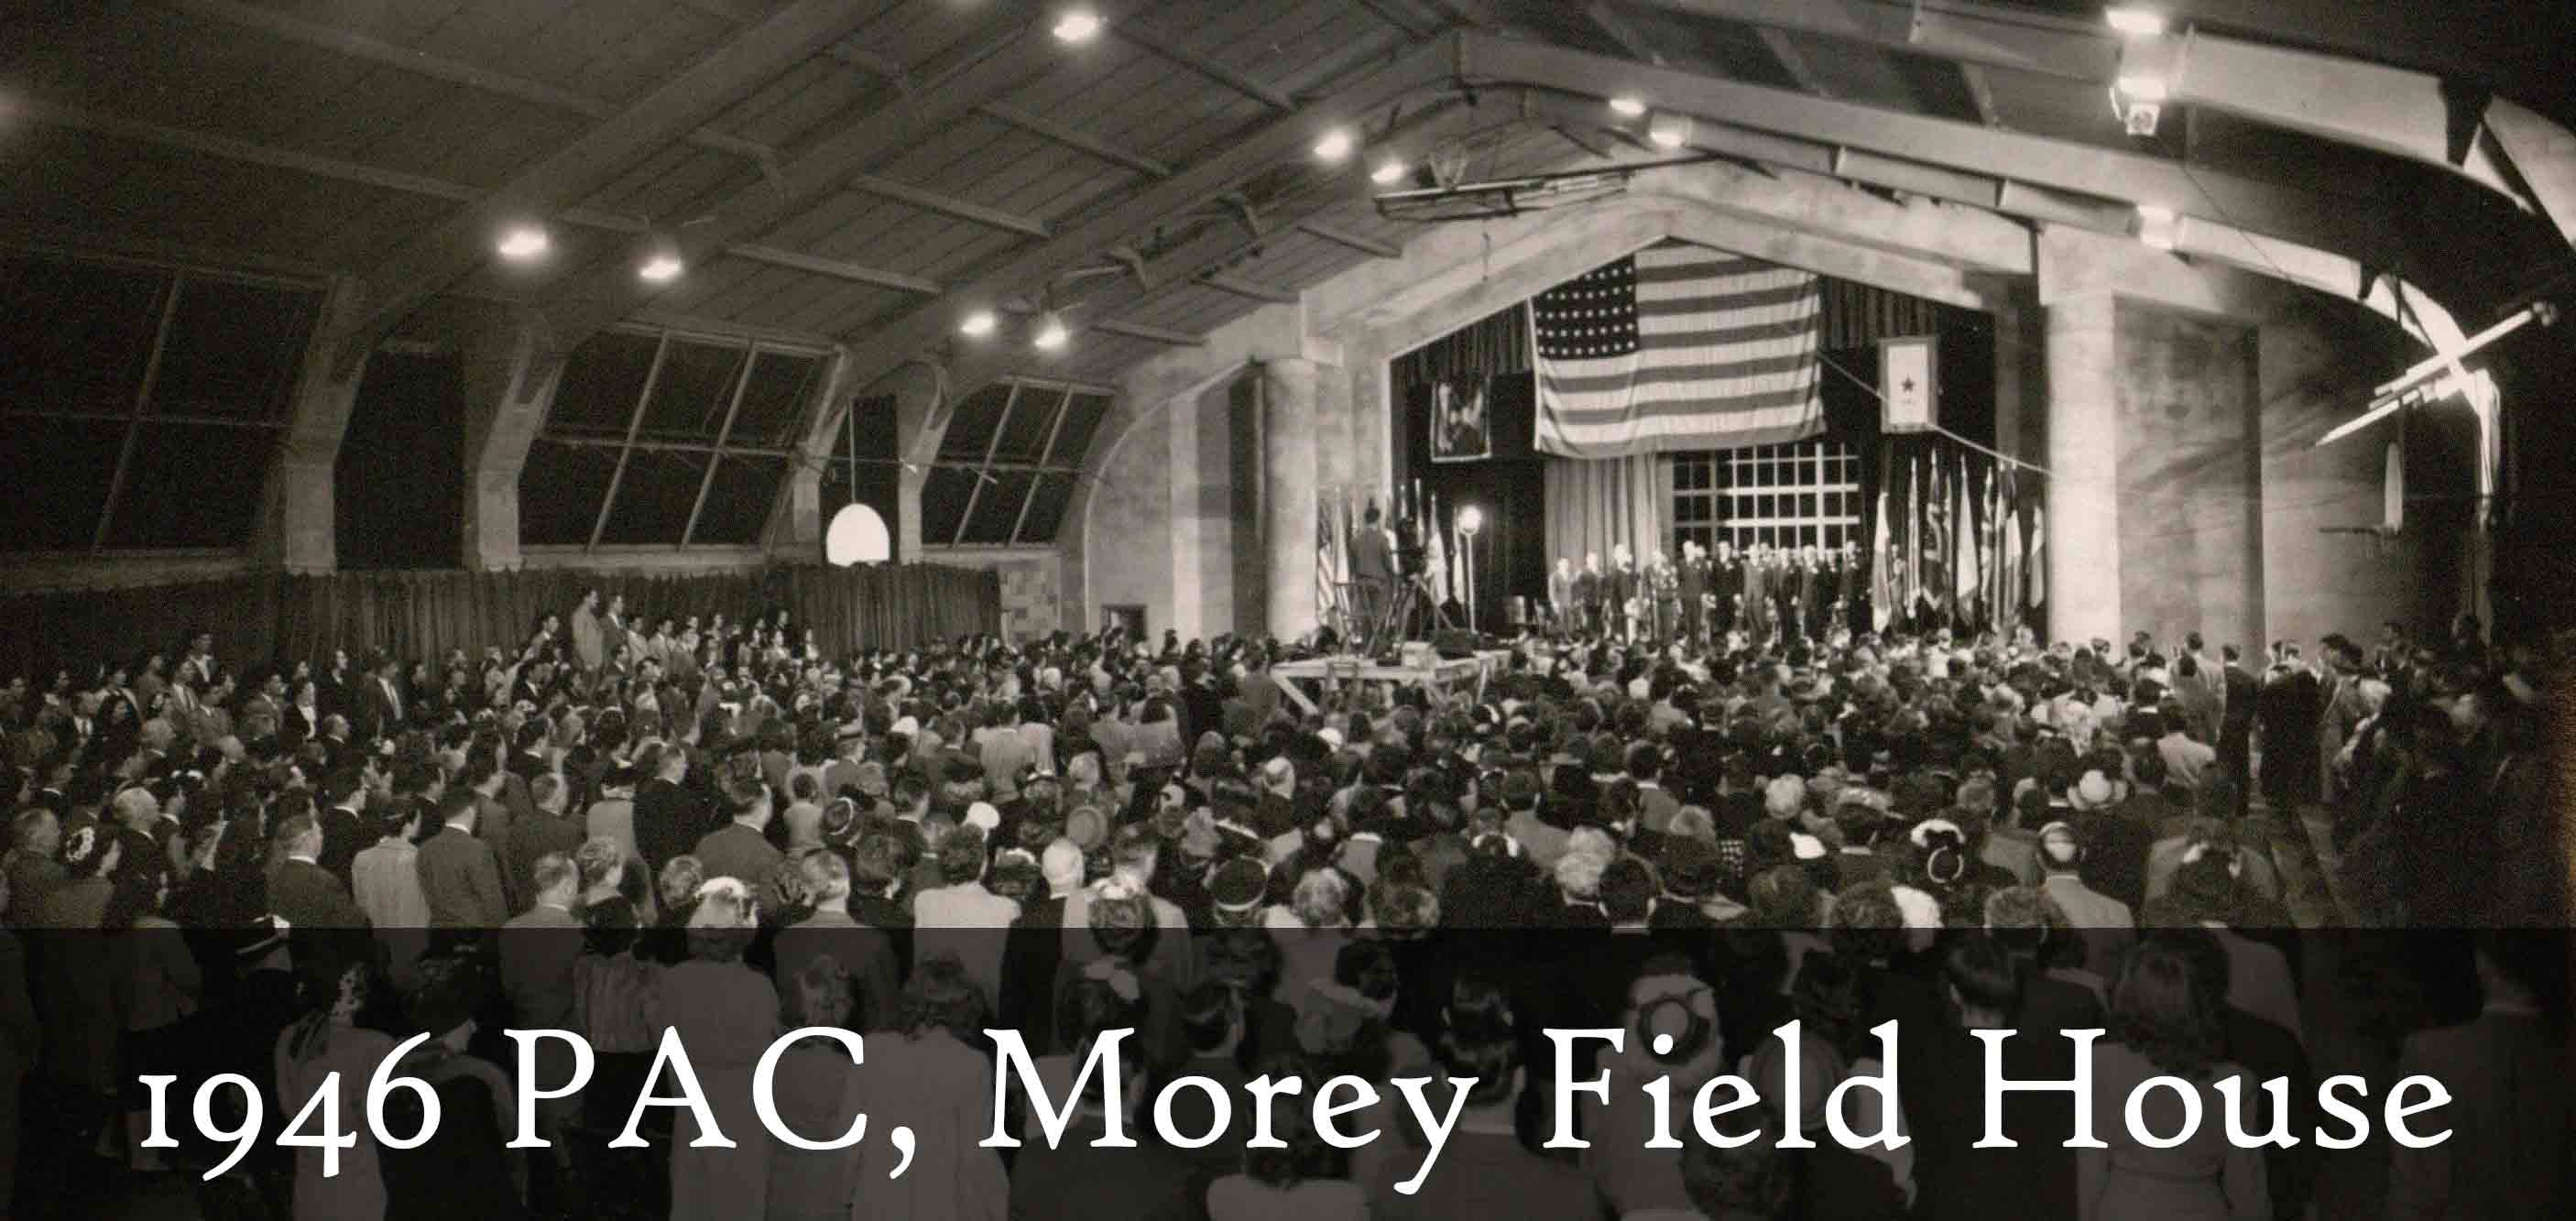 PAC conference at Morey Field House